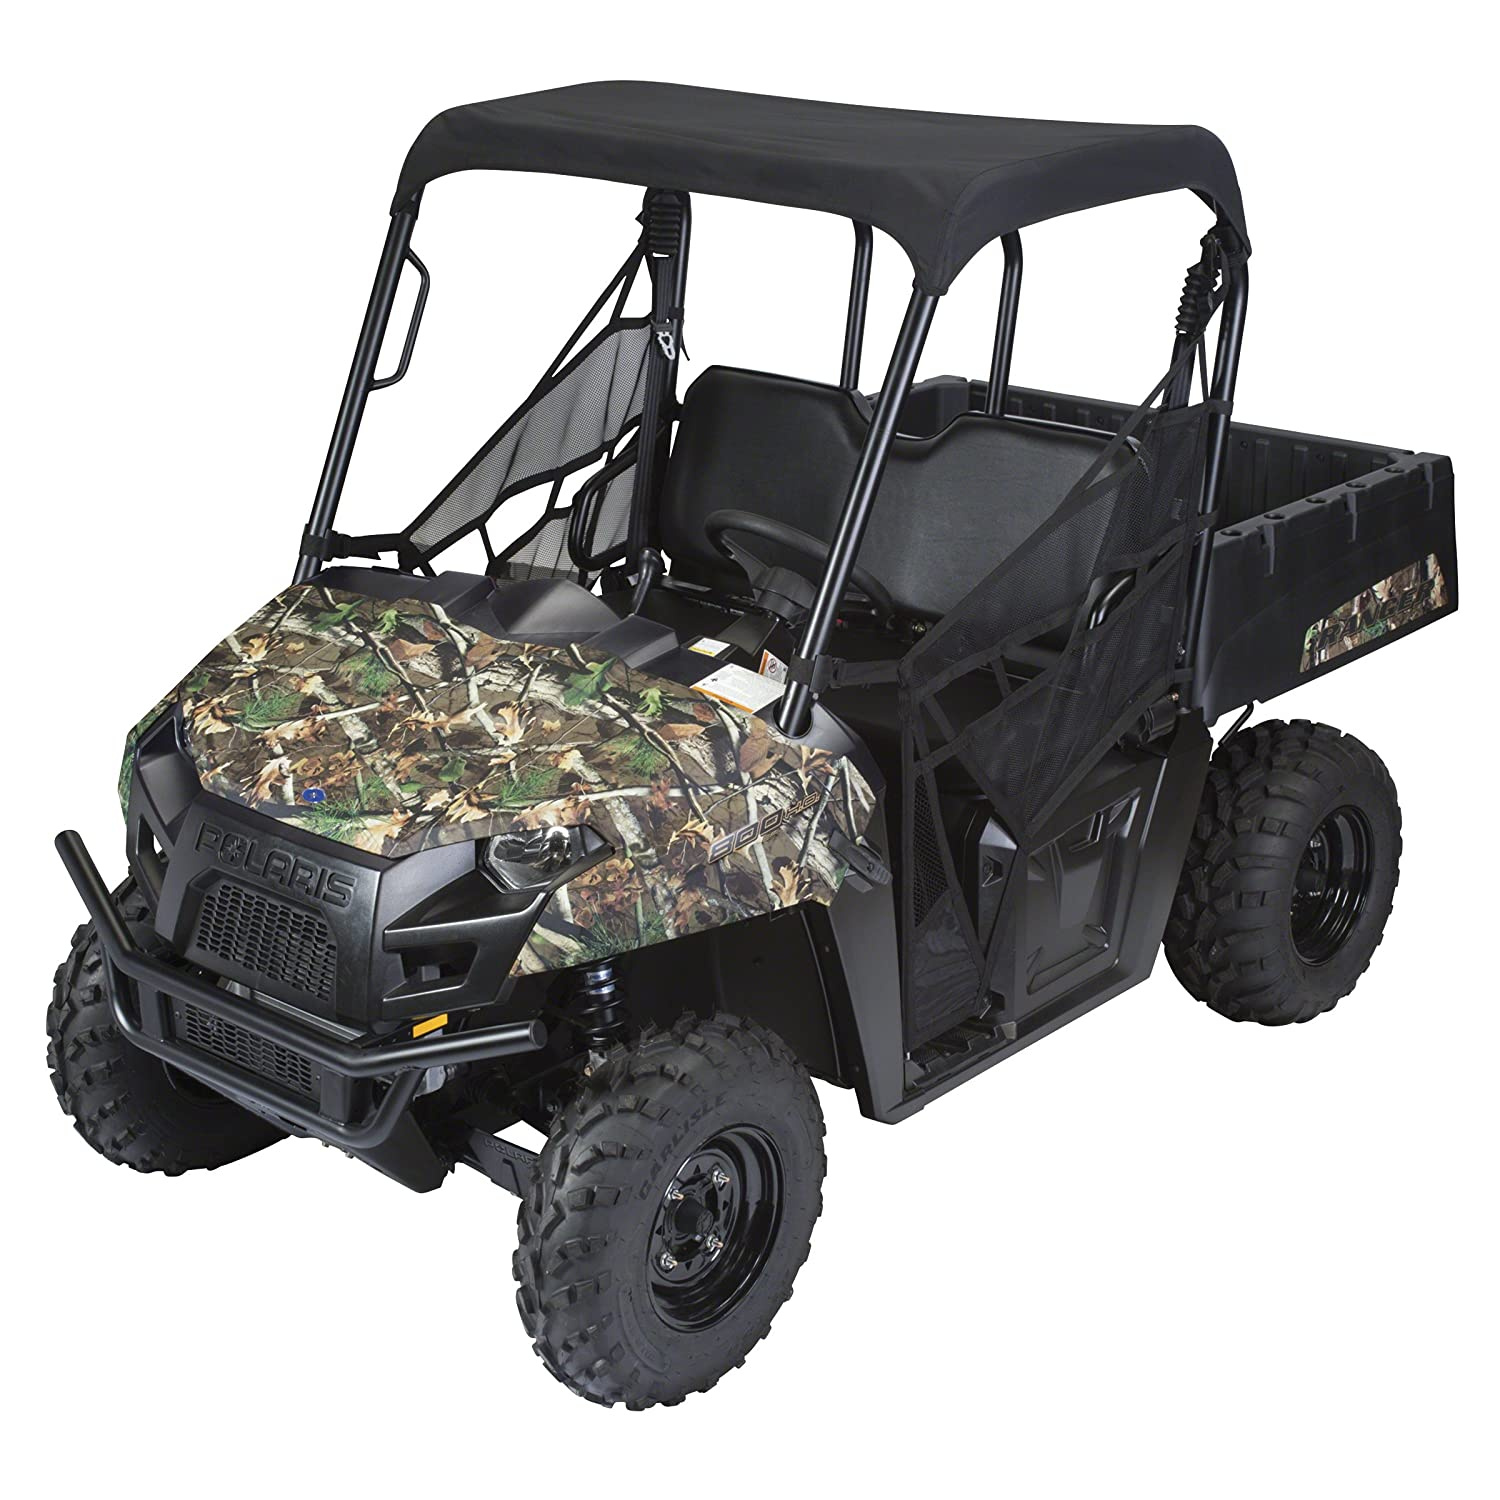 Classic Accessories 18-086-010401-00 Black QuadGear UTV Roll Cage Top